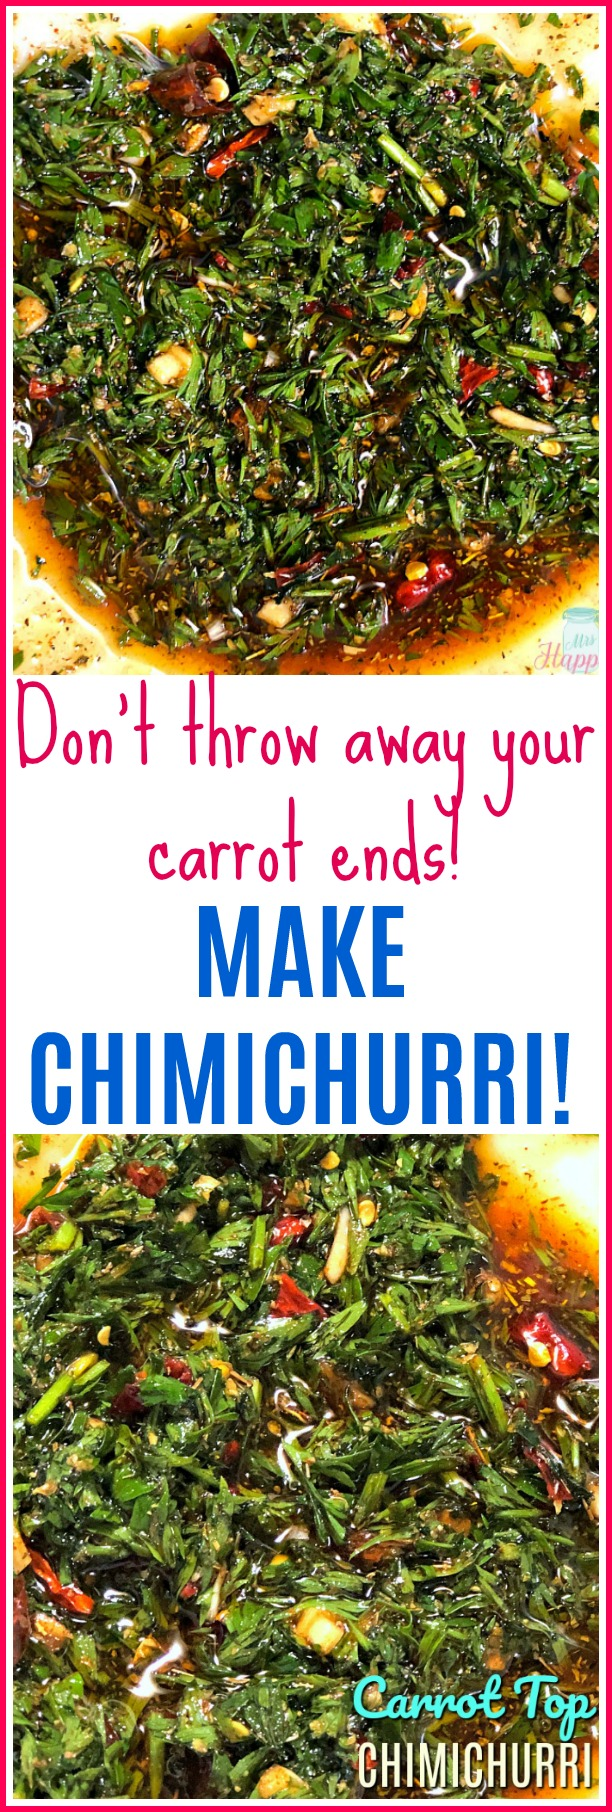 Don't throw away your carrot ends 'collage' Make Chimichurri! Carrot Top Chimichurri